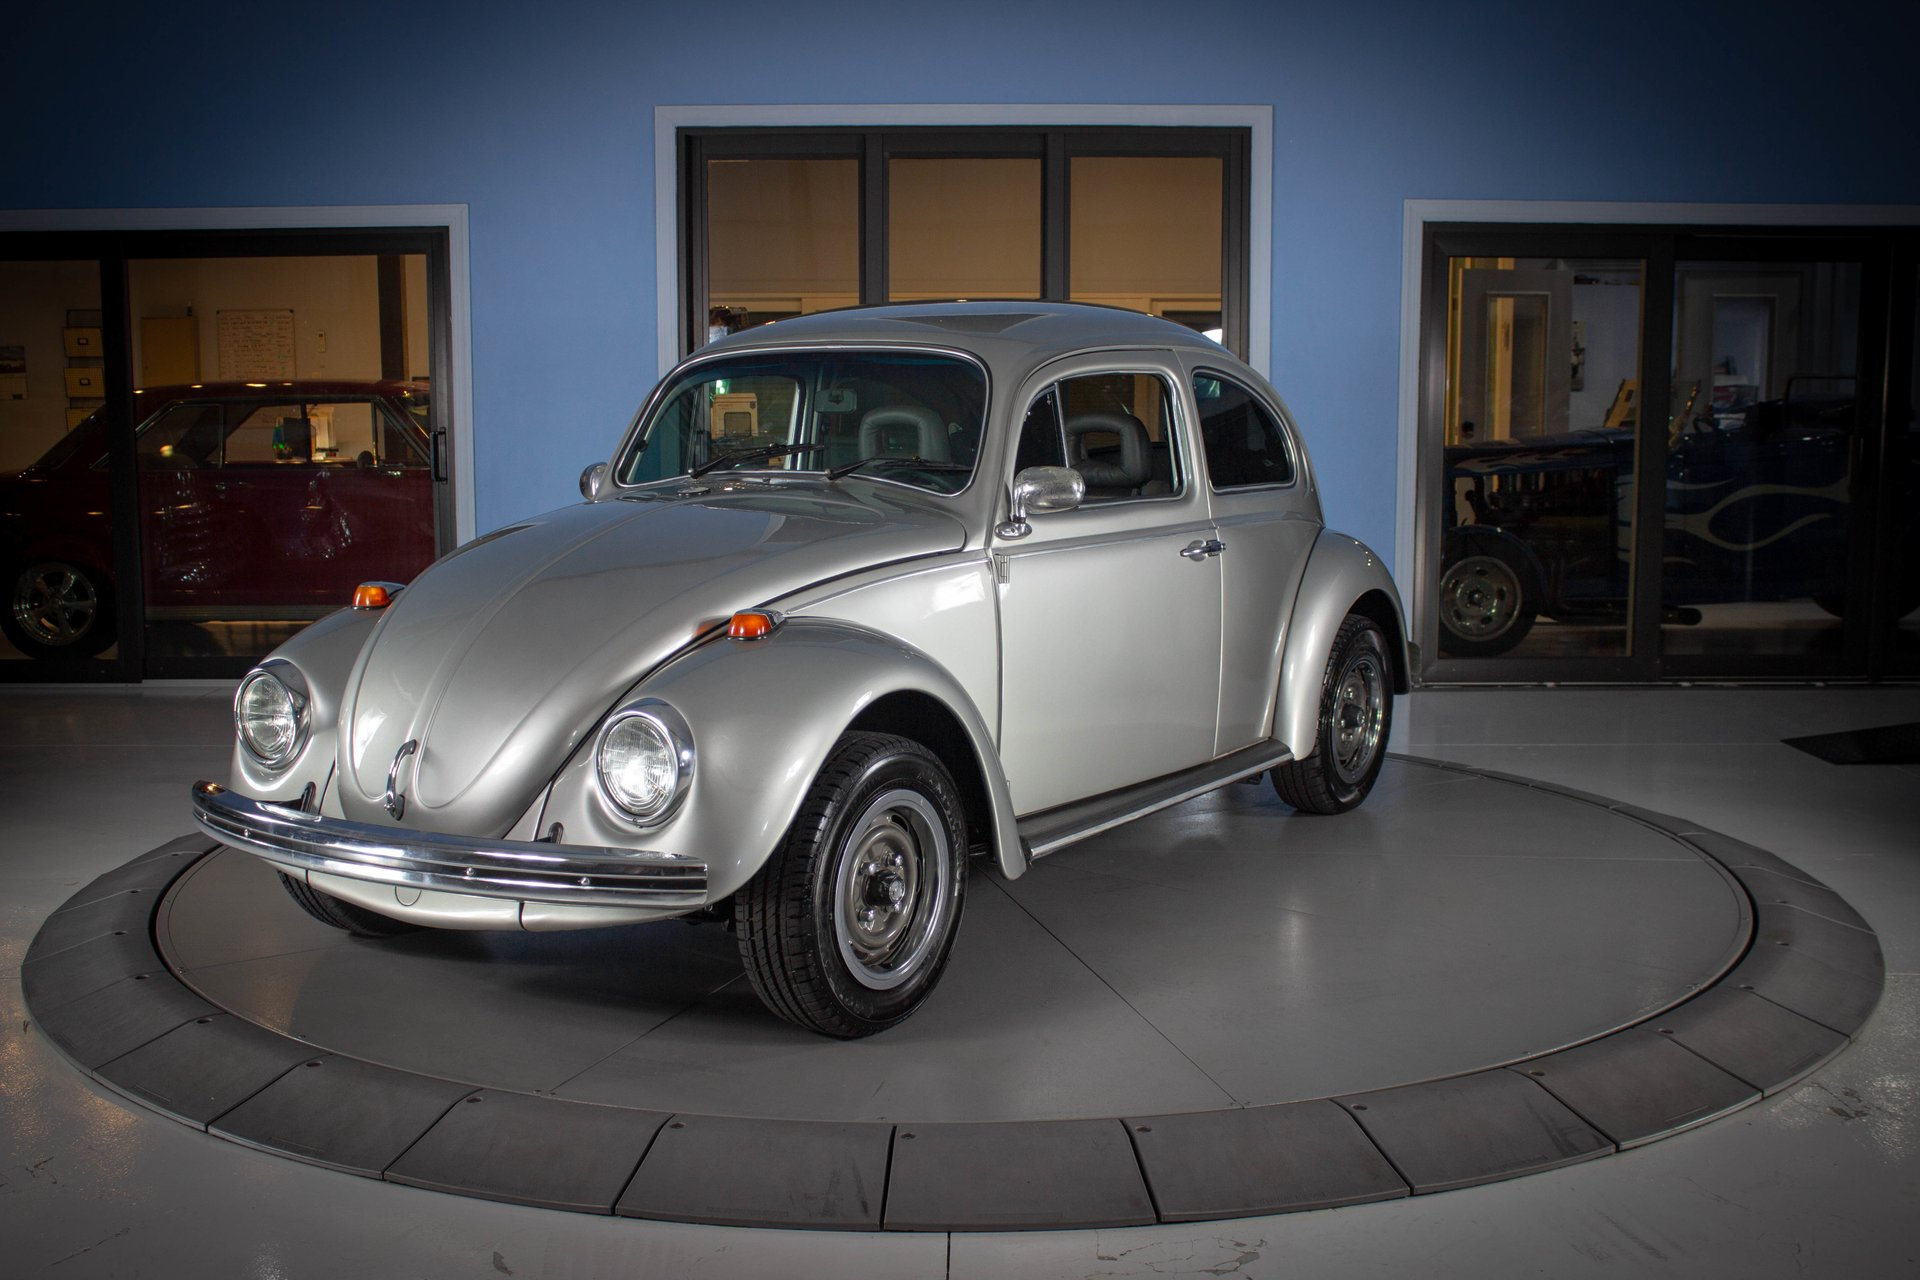 1974 Volkswagen Beetle Classic Cars Used Cars For Sale In Tampa Fl